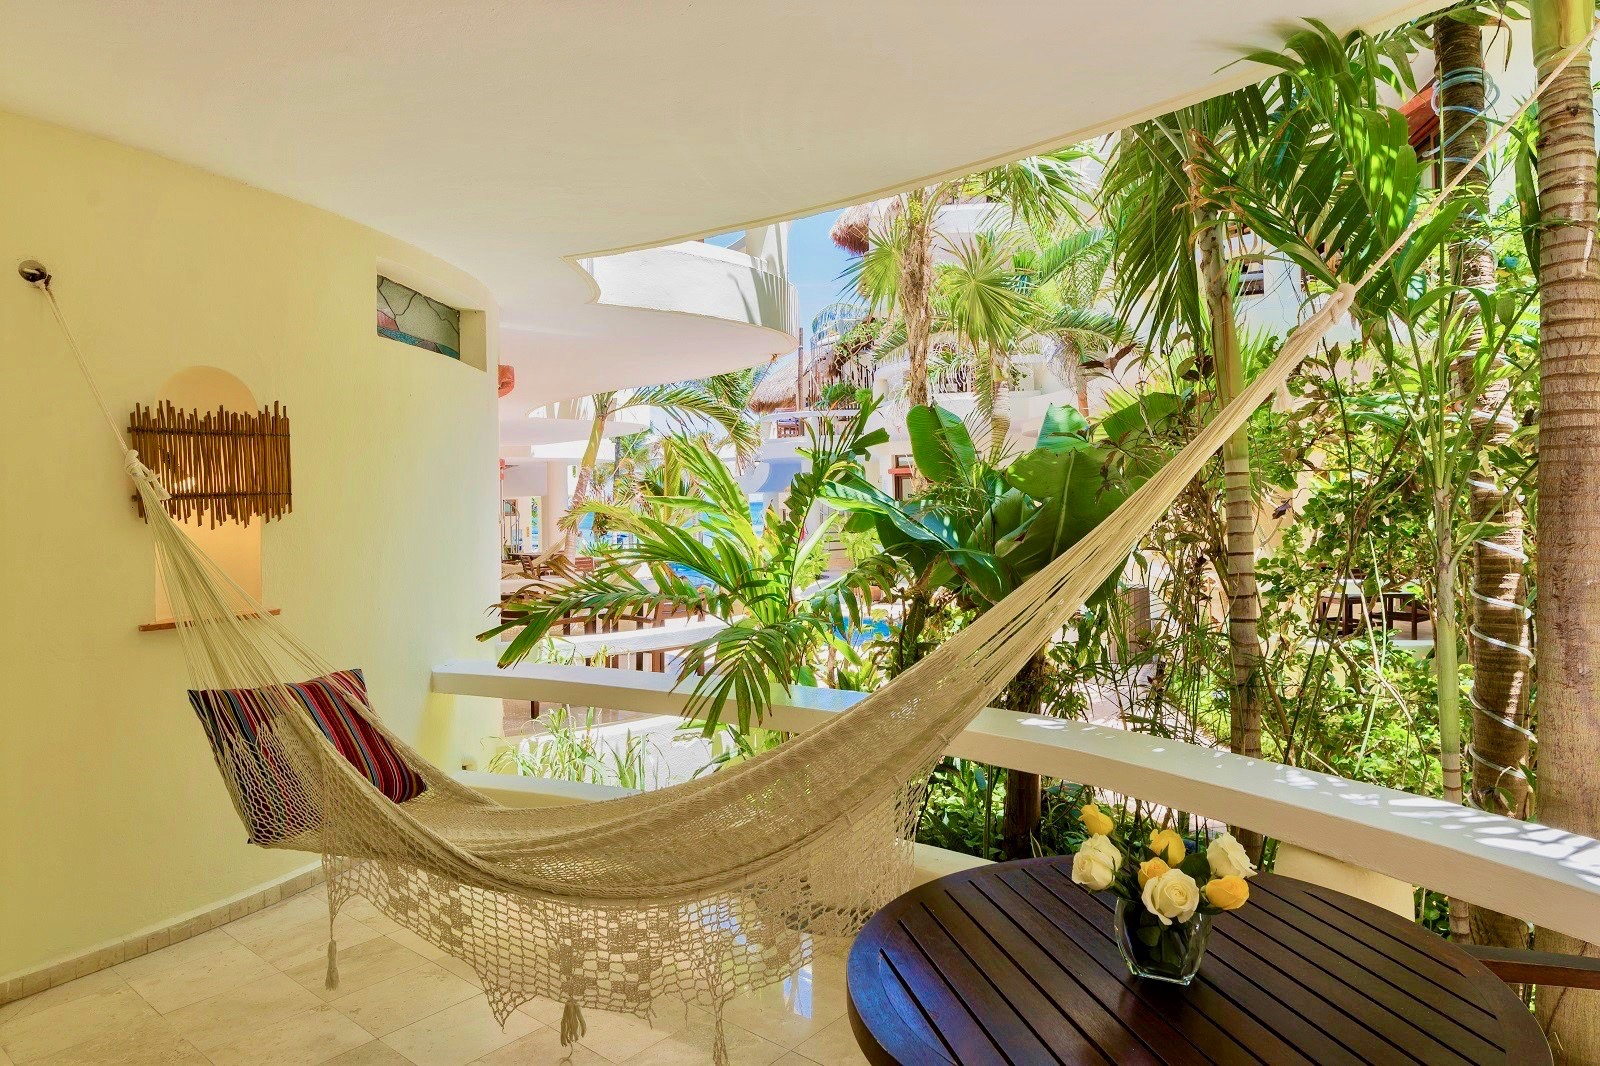 Private relaxing area.